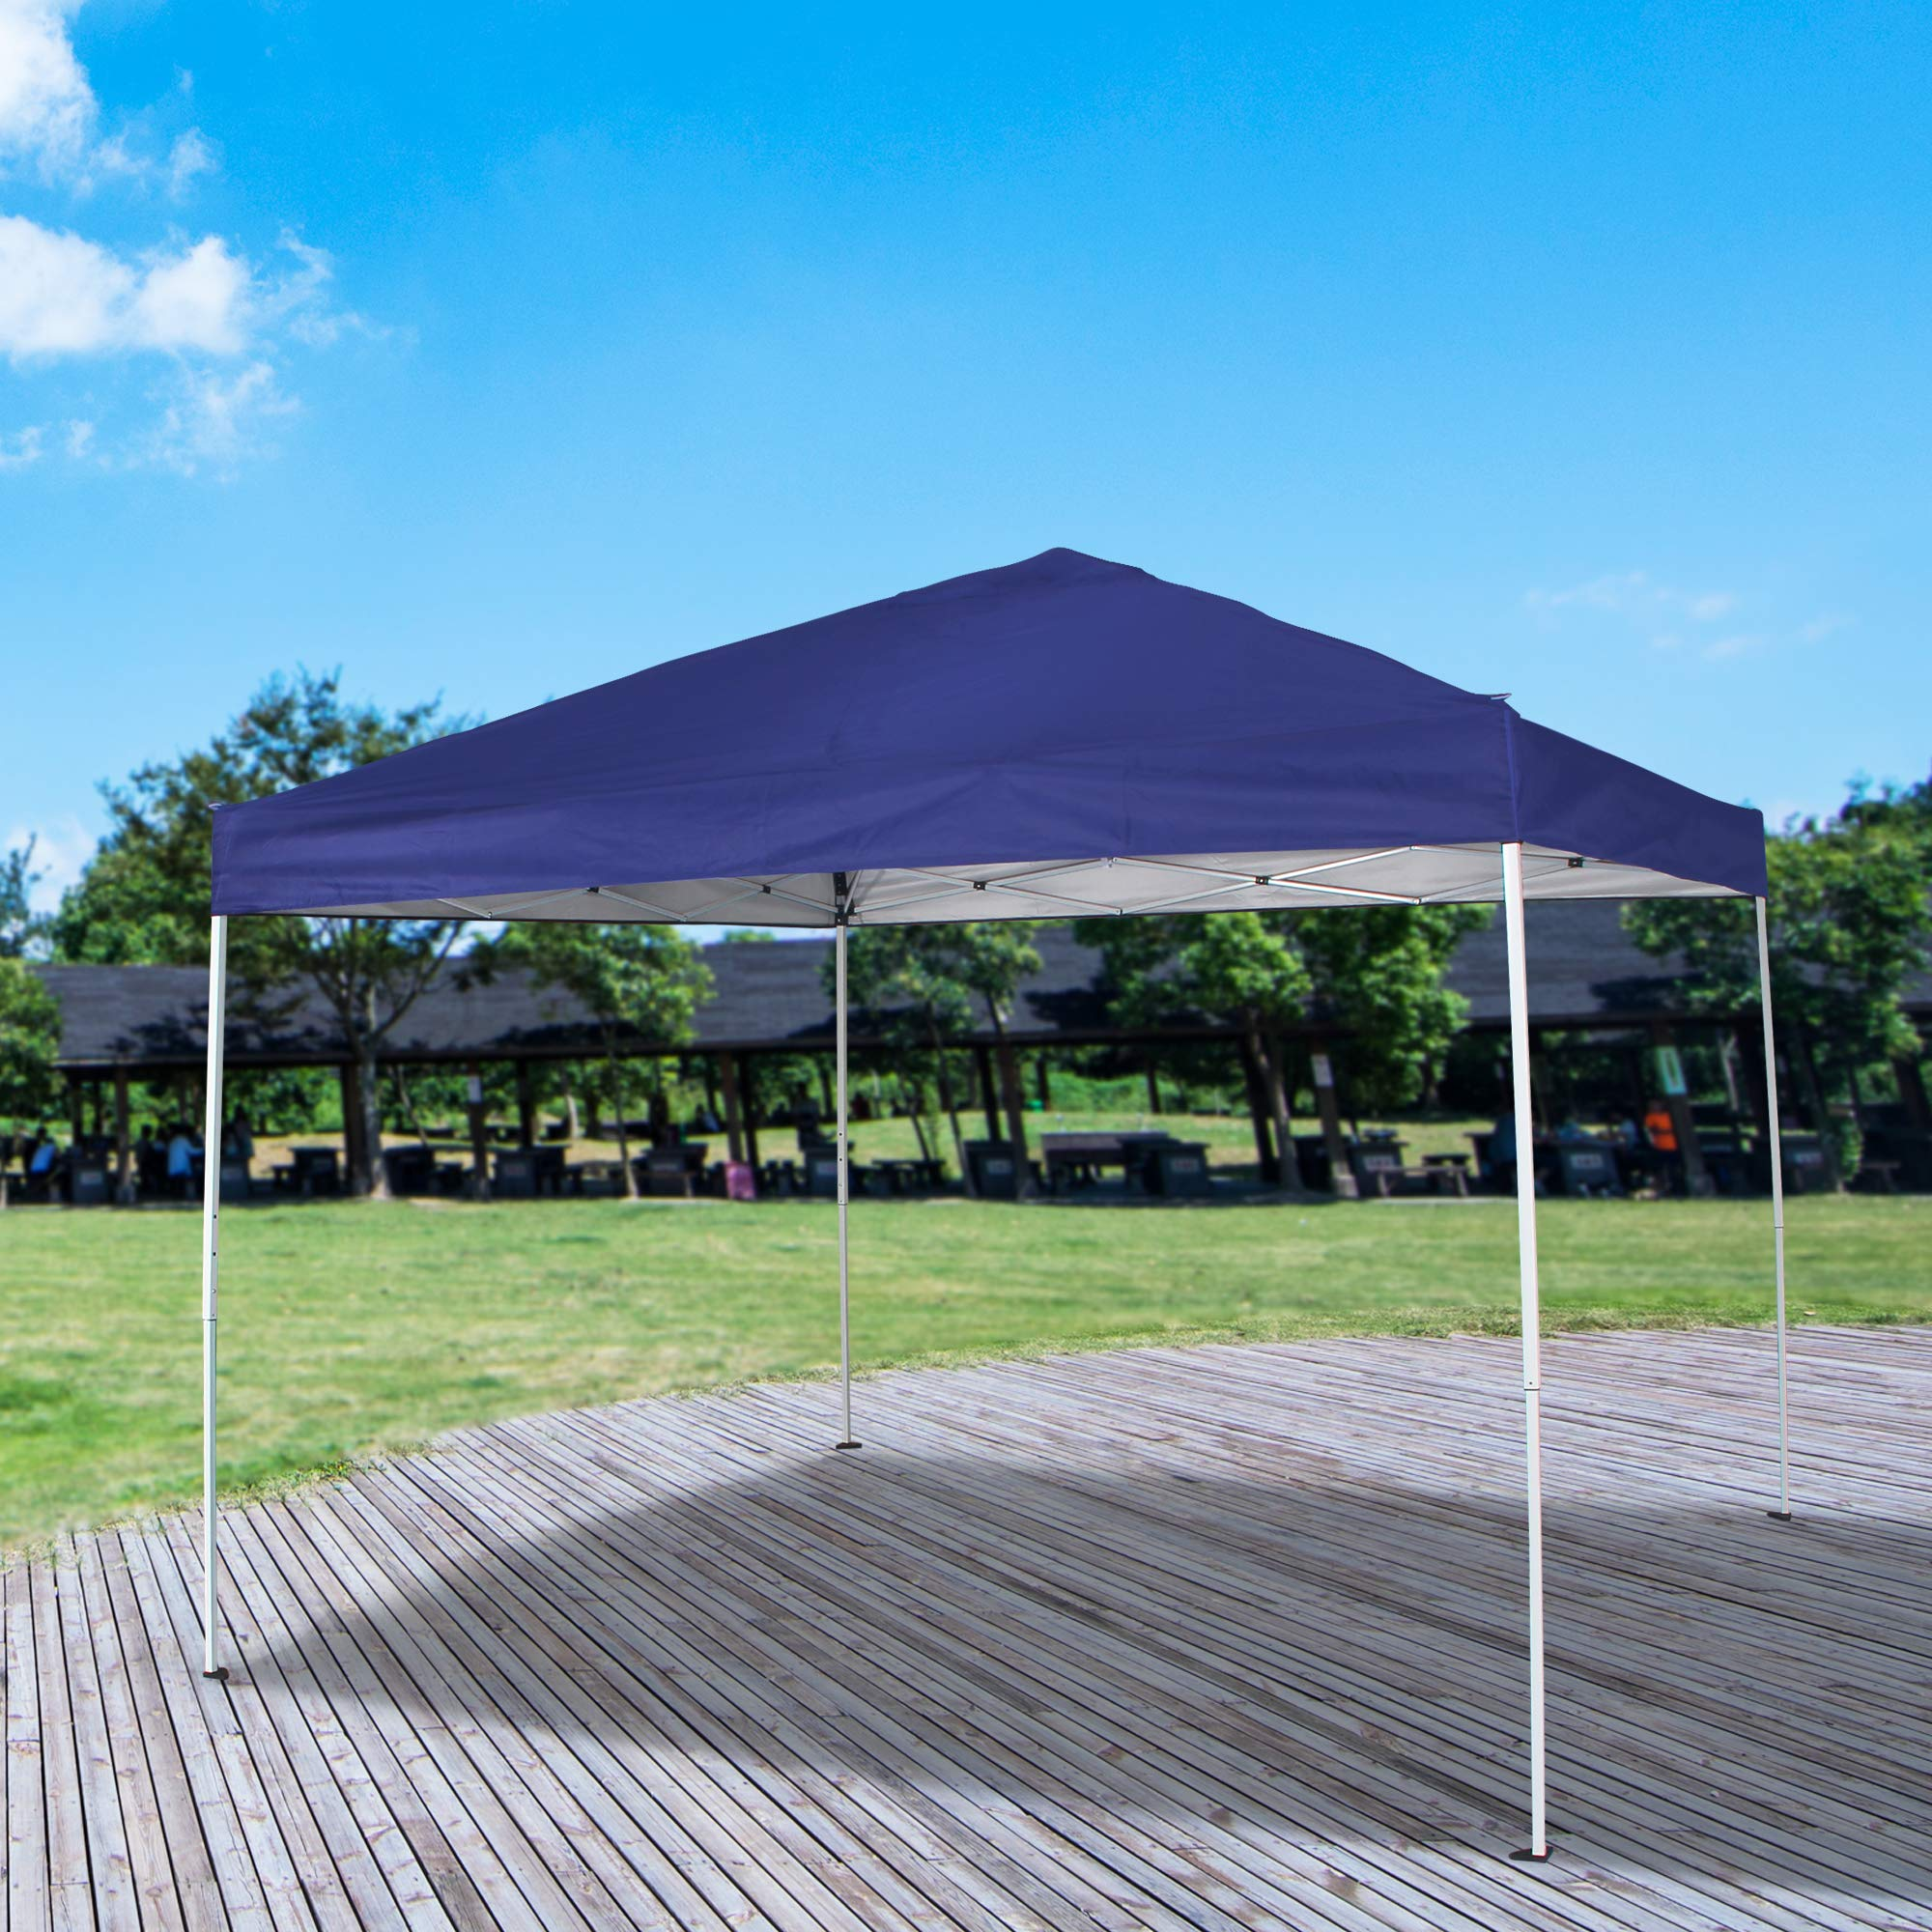 Homevibes 10' x 10' Pop up Canopy Tent Ez up Portable UV Coated Outdoor Garden Commercial Instant Tent Shade Folding Straight Leg for Parties Easy Set up with Carry Bag, Blue